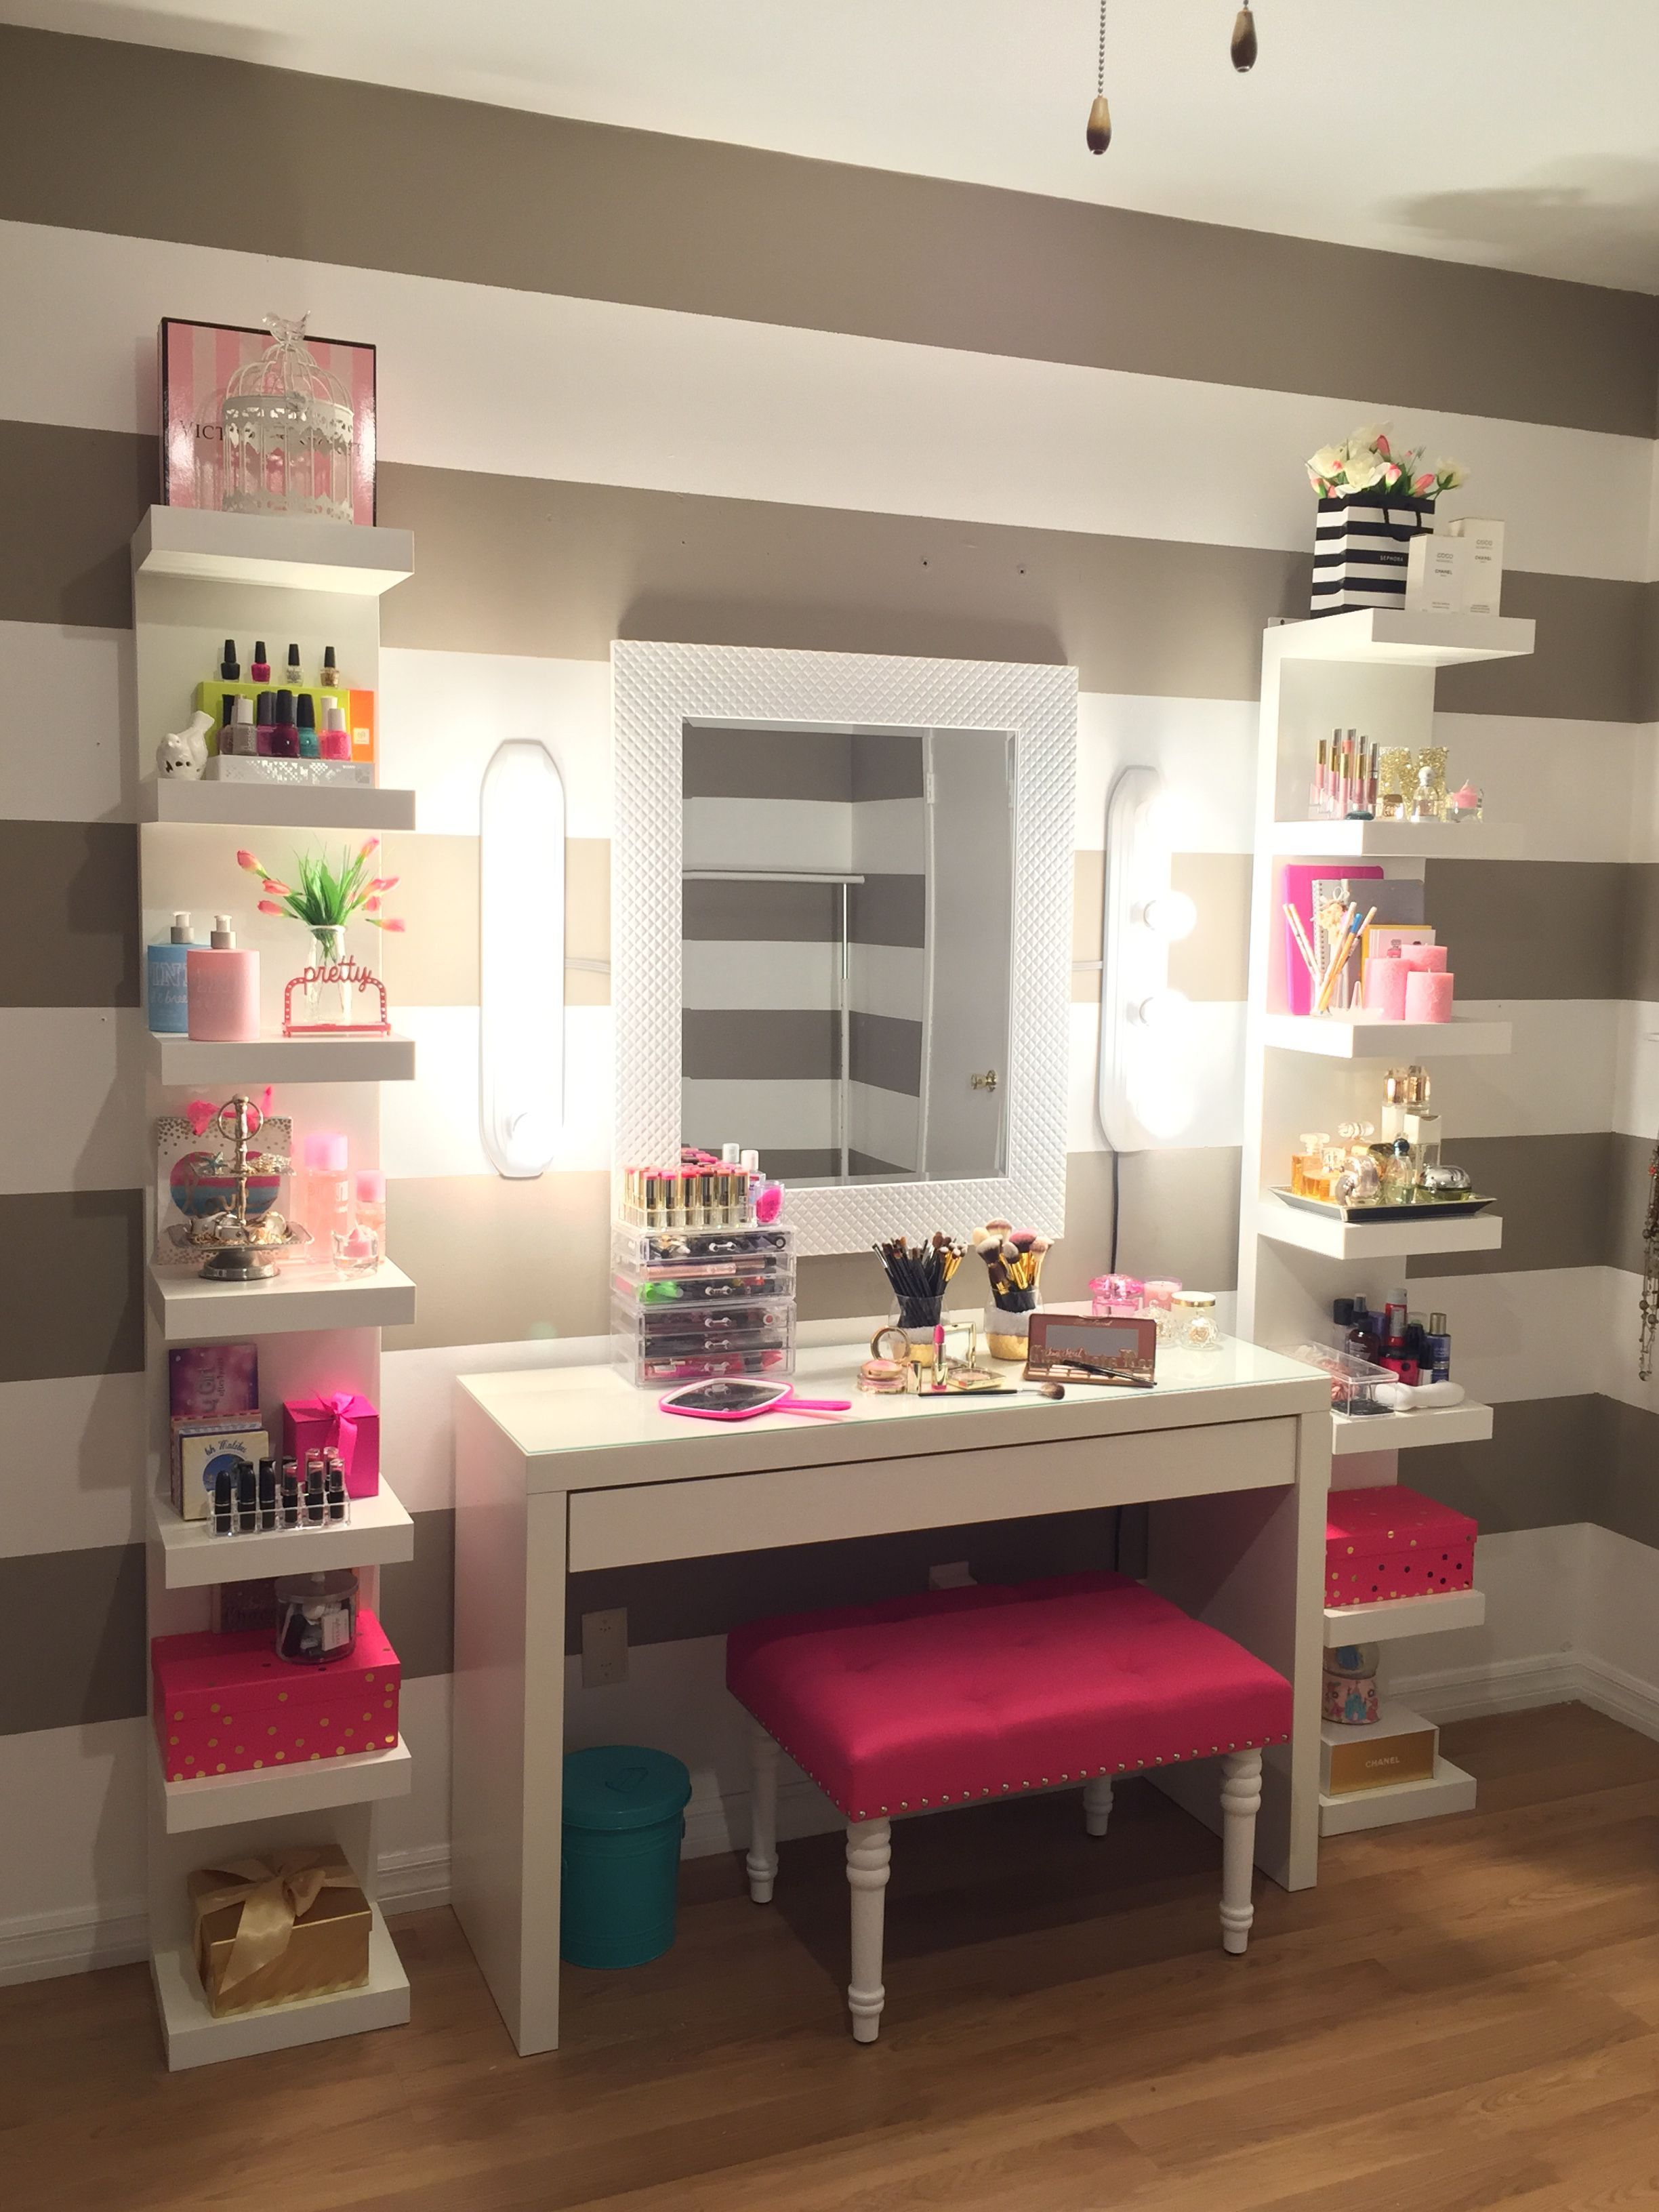 Vanity Makeup  Room inspiration, Makeup rooms, Home decor